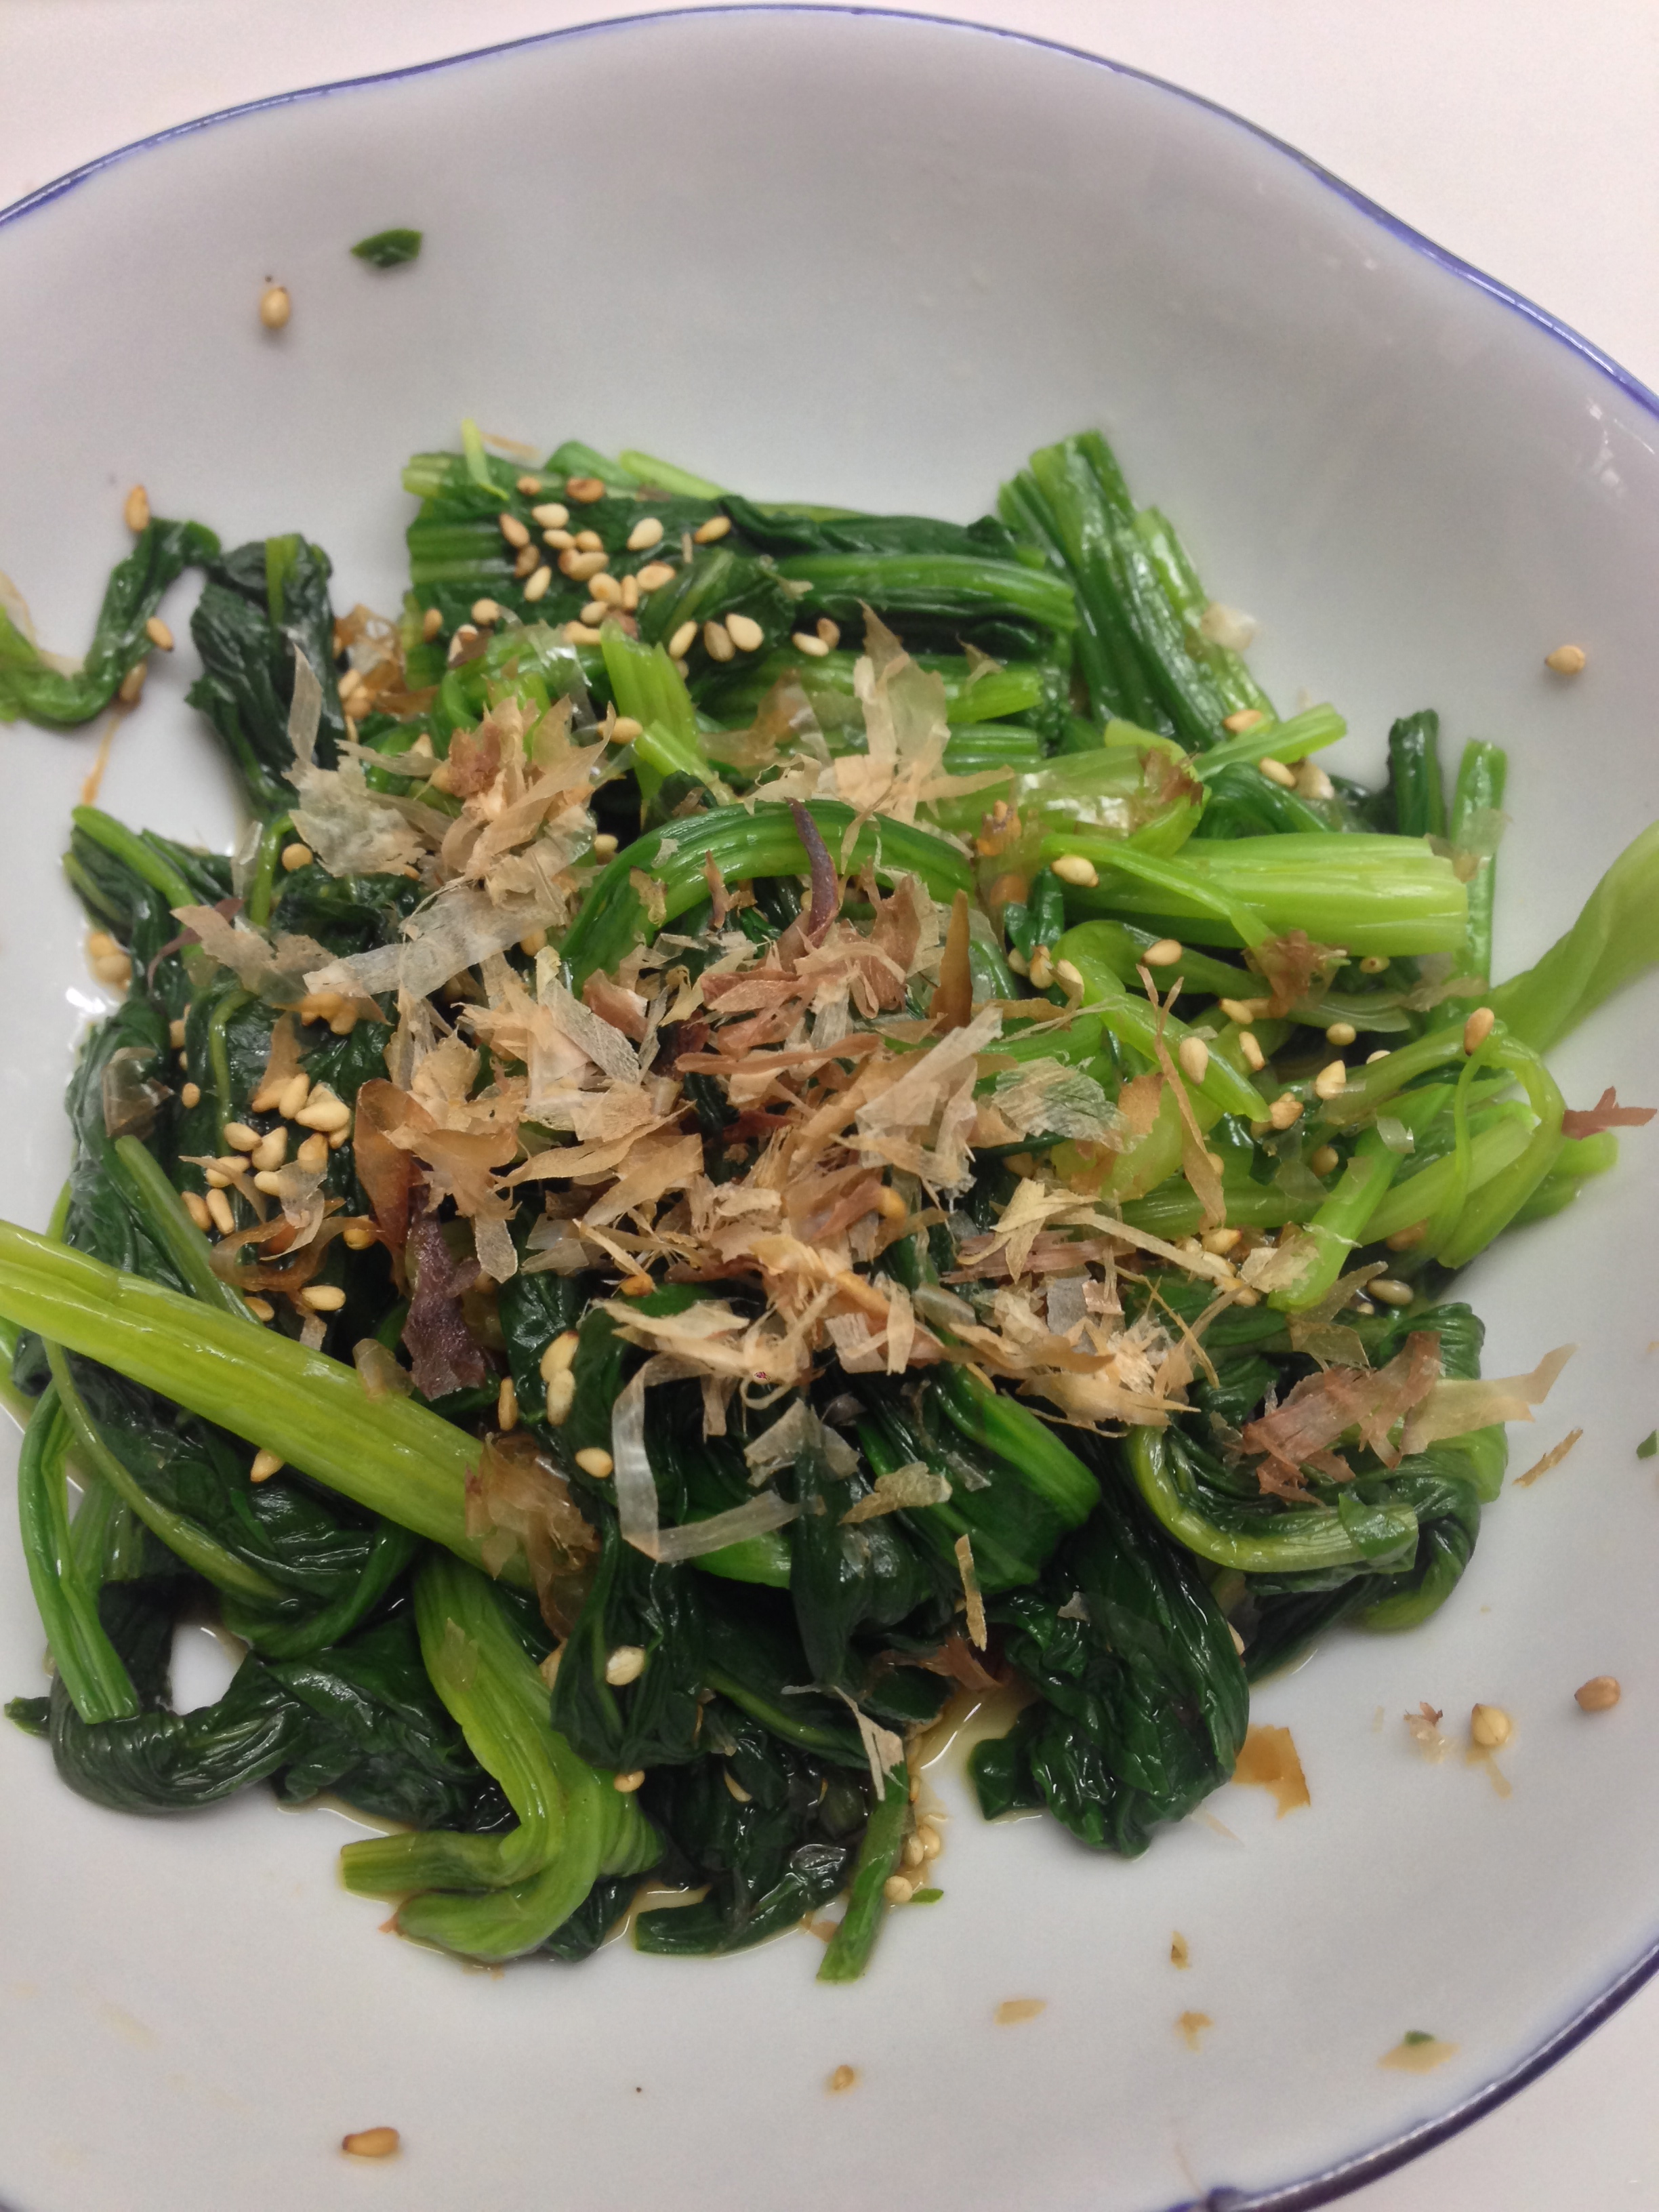 Spinach cooked Japanese style